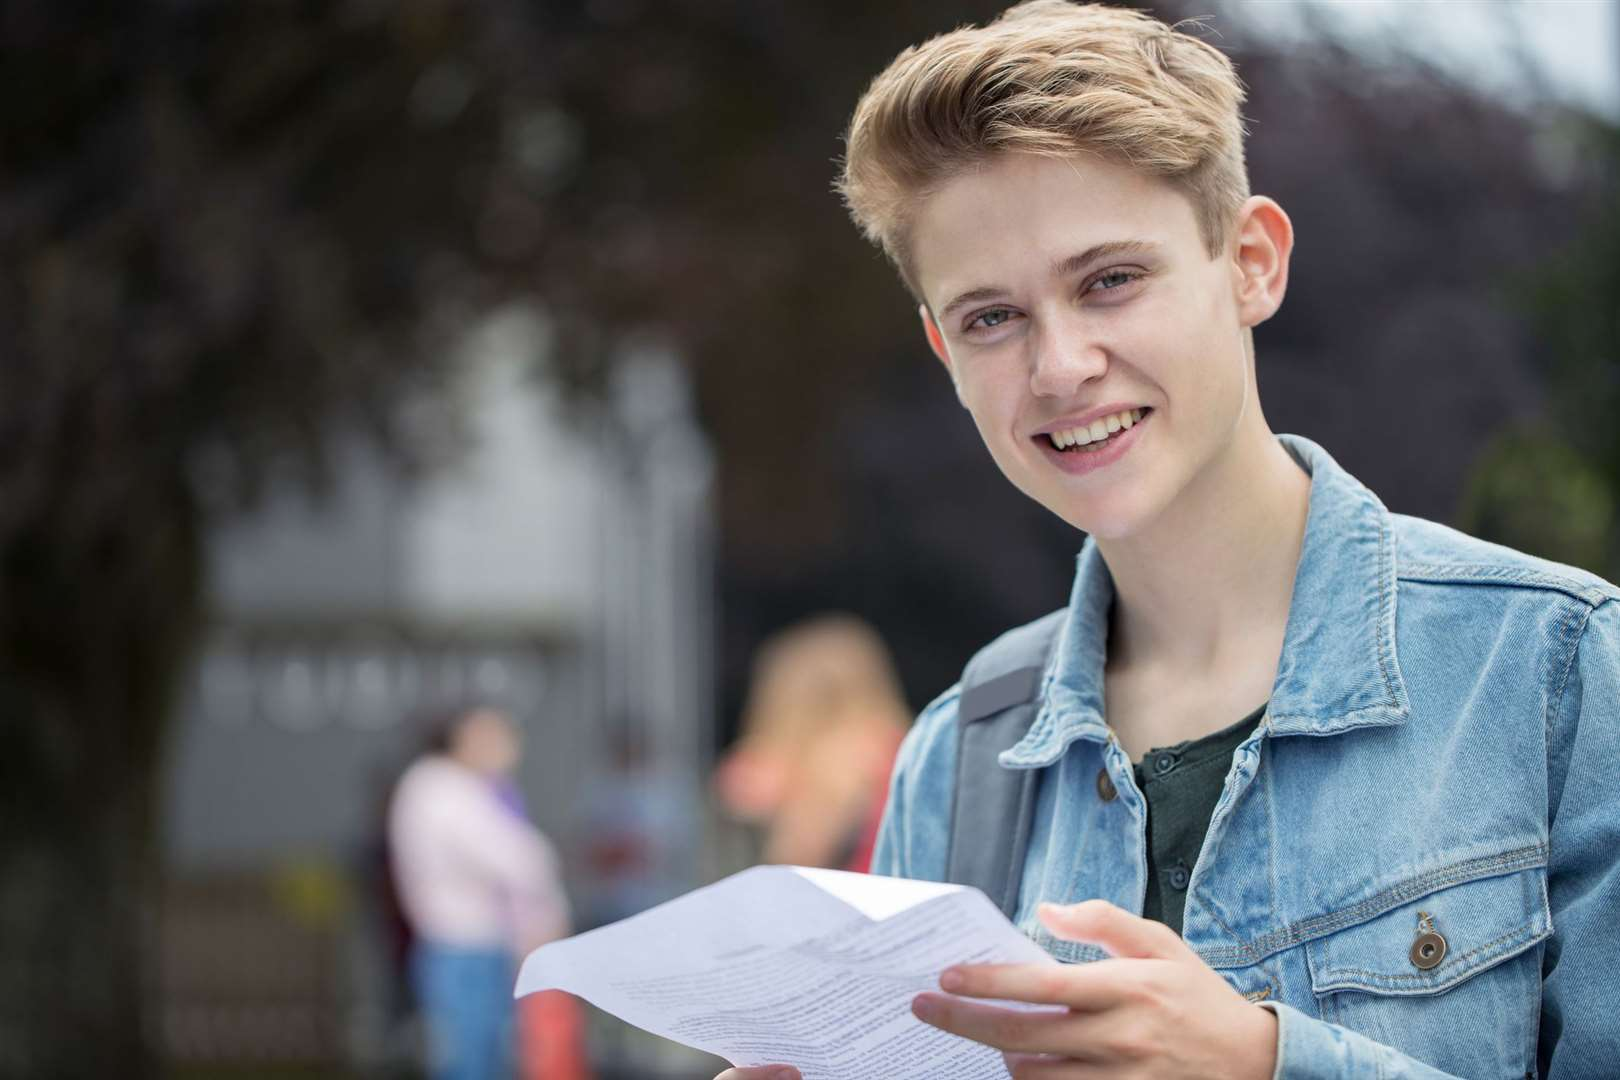 Collecting A-level results is a different experience this year